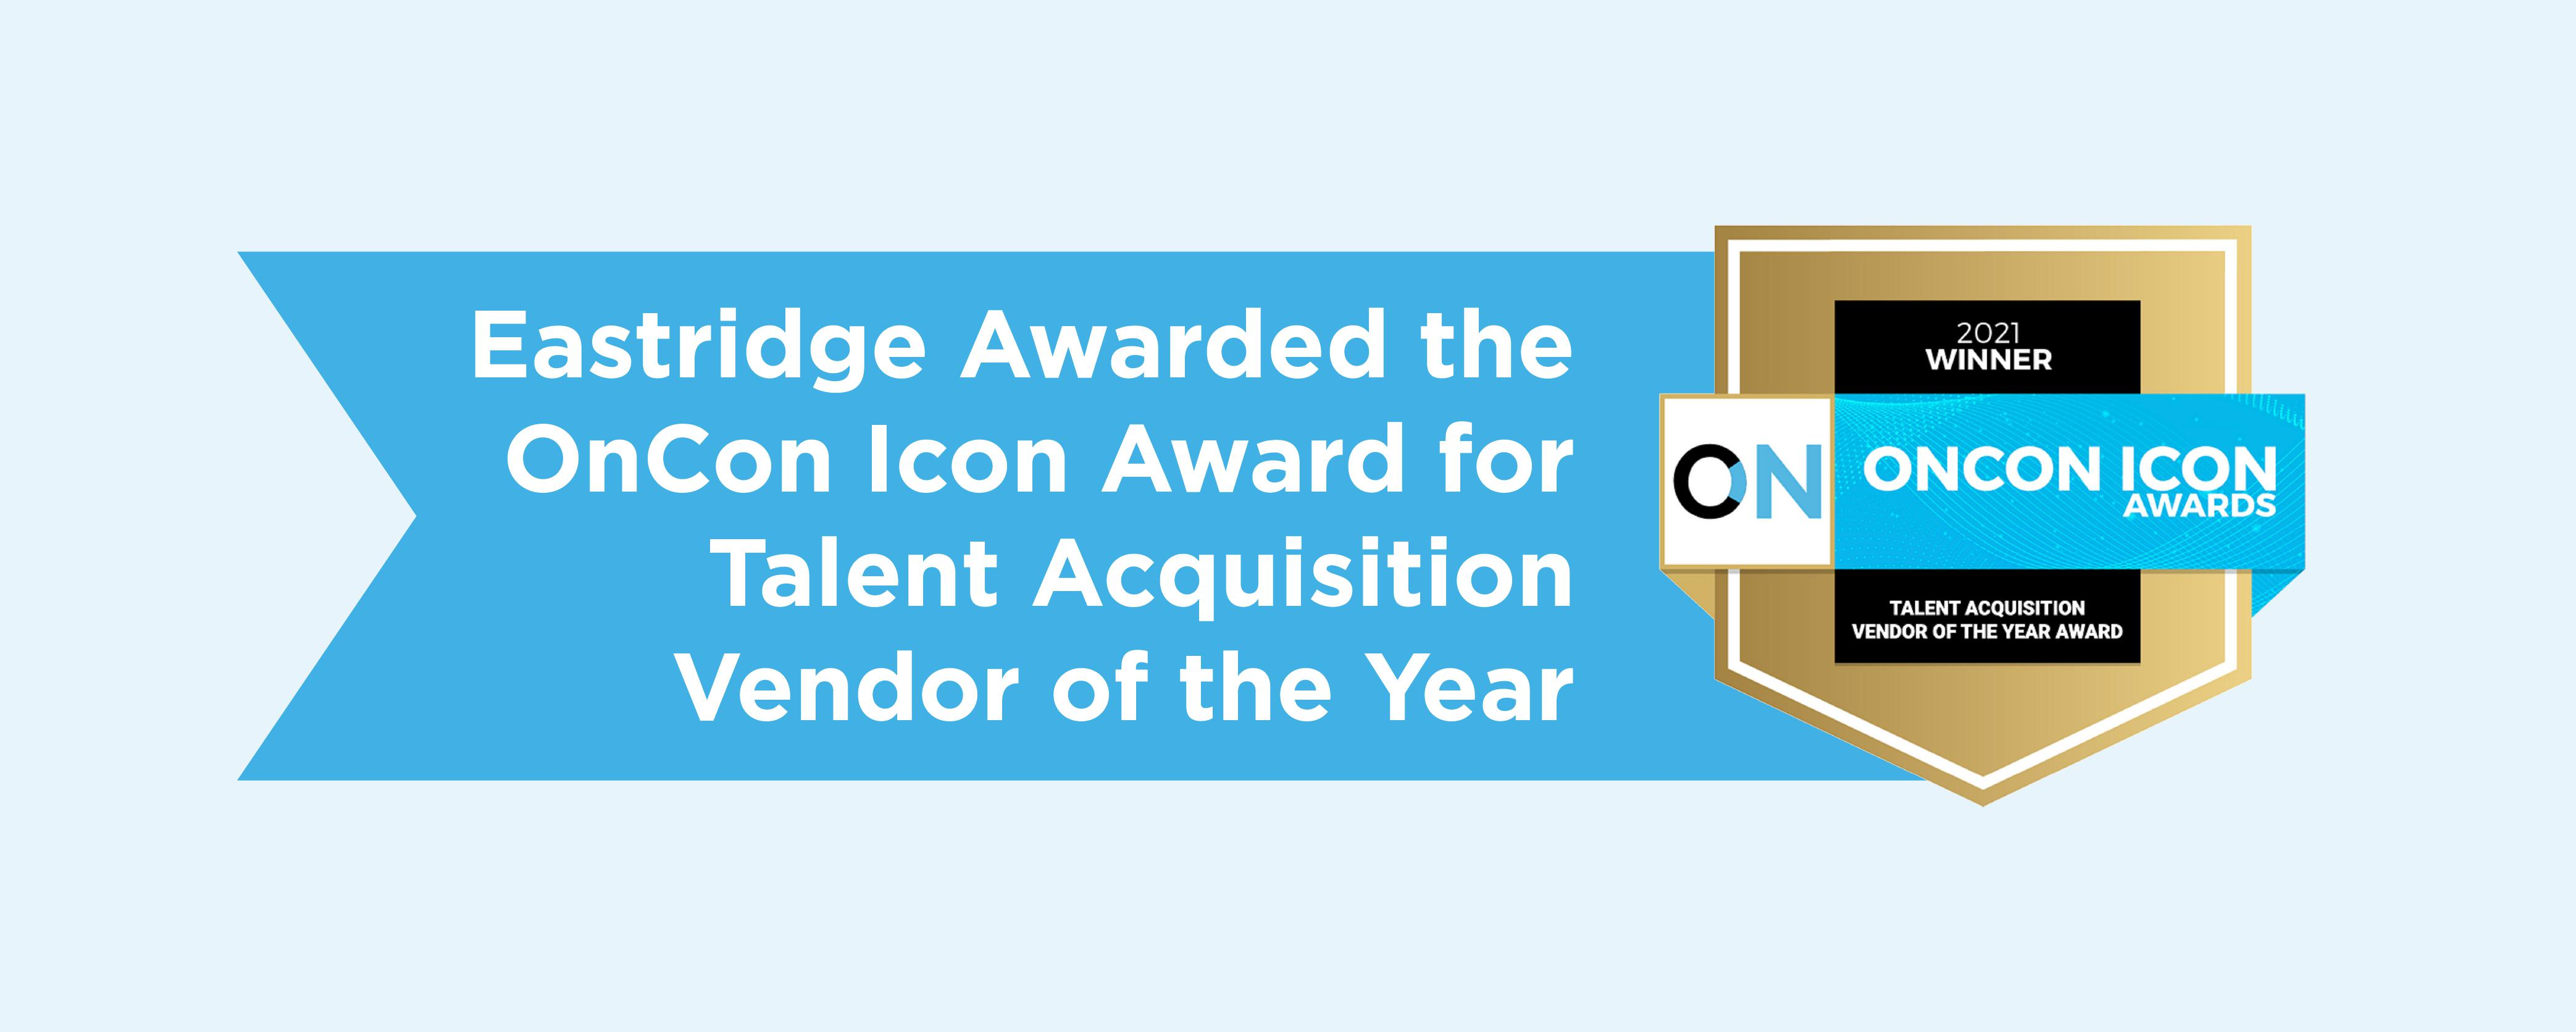 Eastridge Wins OnCon's Talent Acquisition Vendor of the Year Award